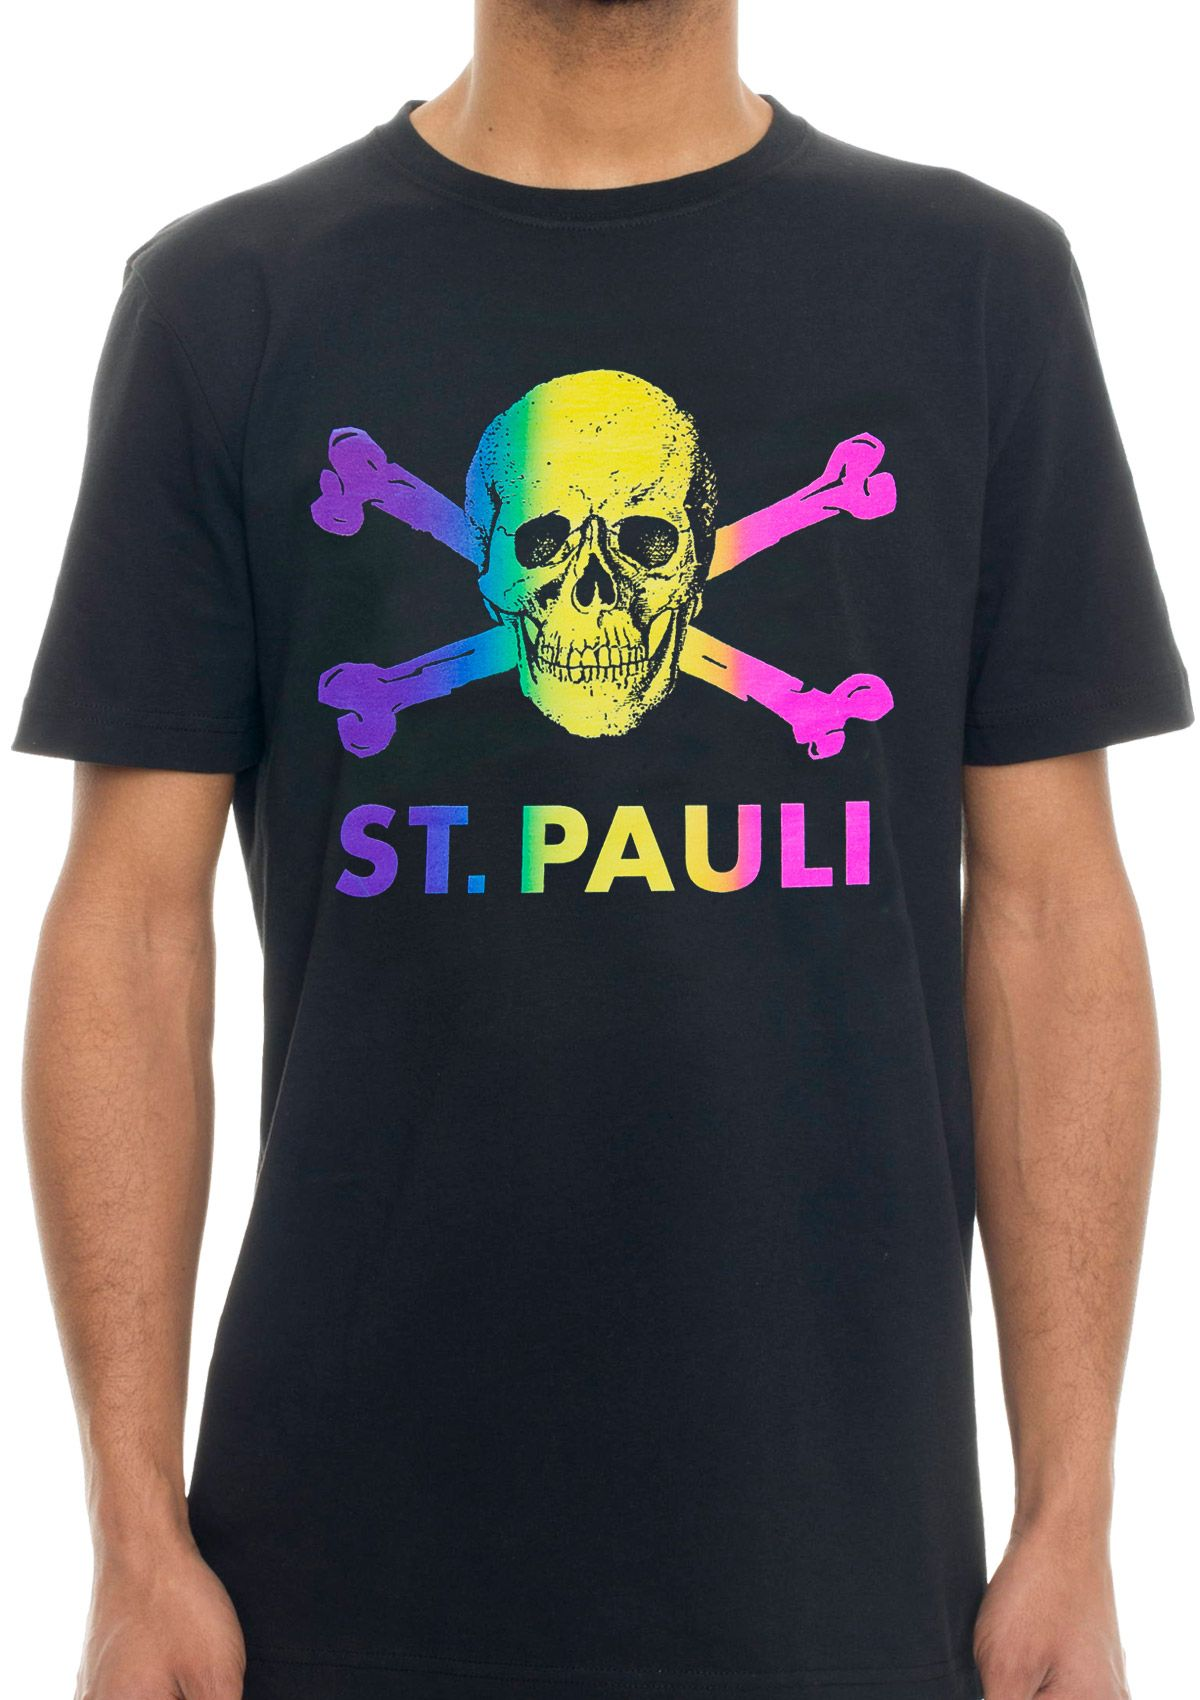 limited st pauli rainbow social shirt hamburg. Black Bedroom Furniture Sets. Home Design Ideas